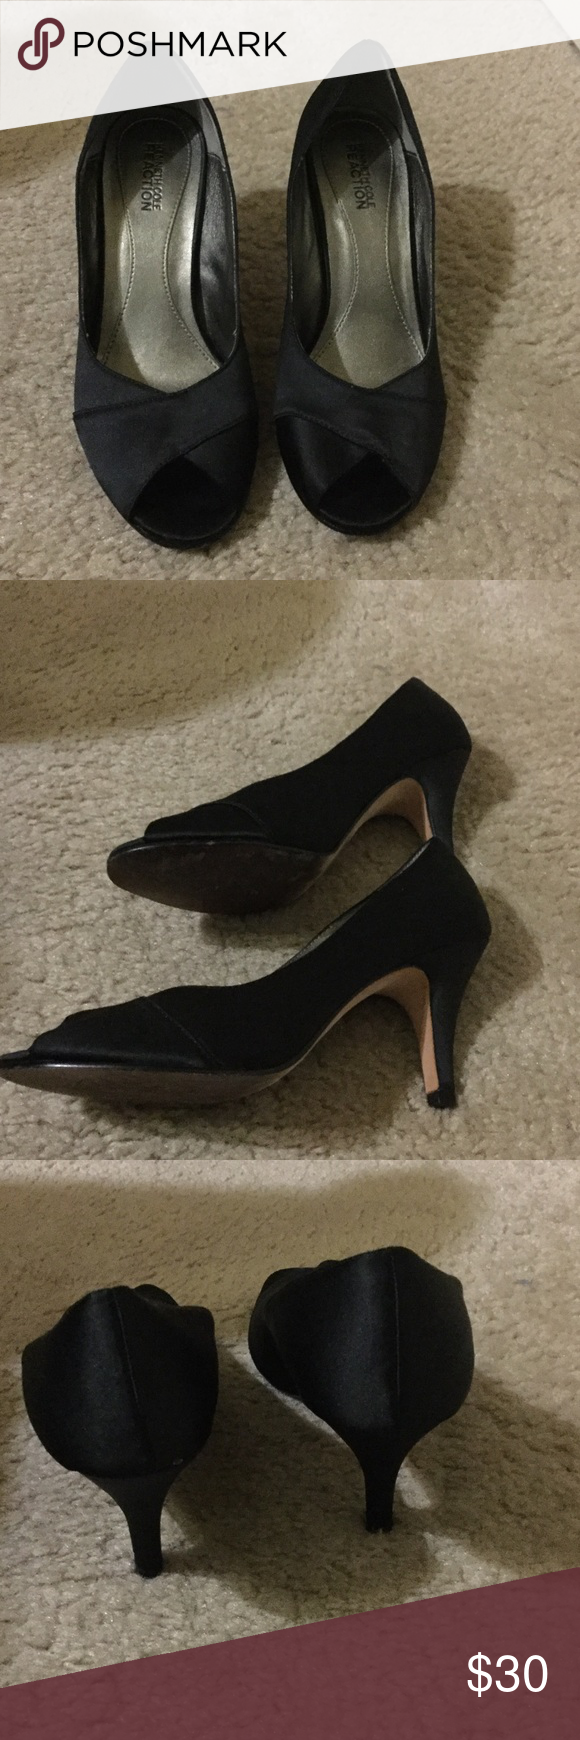 🌷🍃SALE🌷🍃KENNETH COLE Black Peep Toe Pumps 7.5 KENNETH COLE REACTION Black Satin fabric upper leather sole heeled pumps. Open toe. Size 7 1/5 M. Kenneth Cole Reaction Shoes Heels